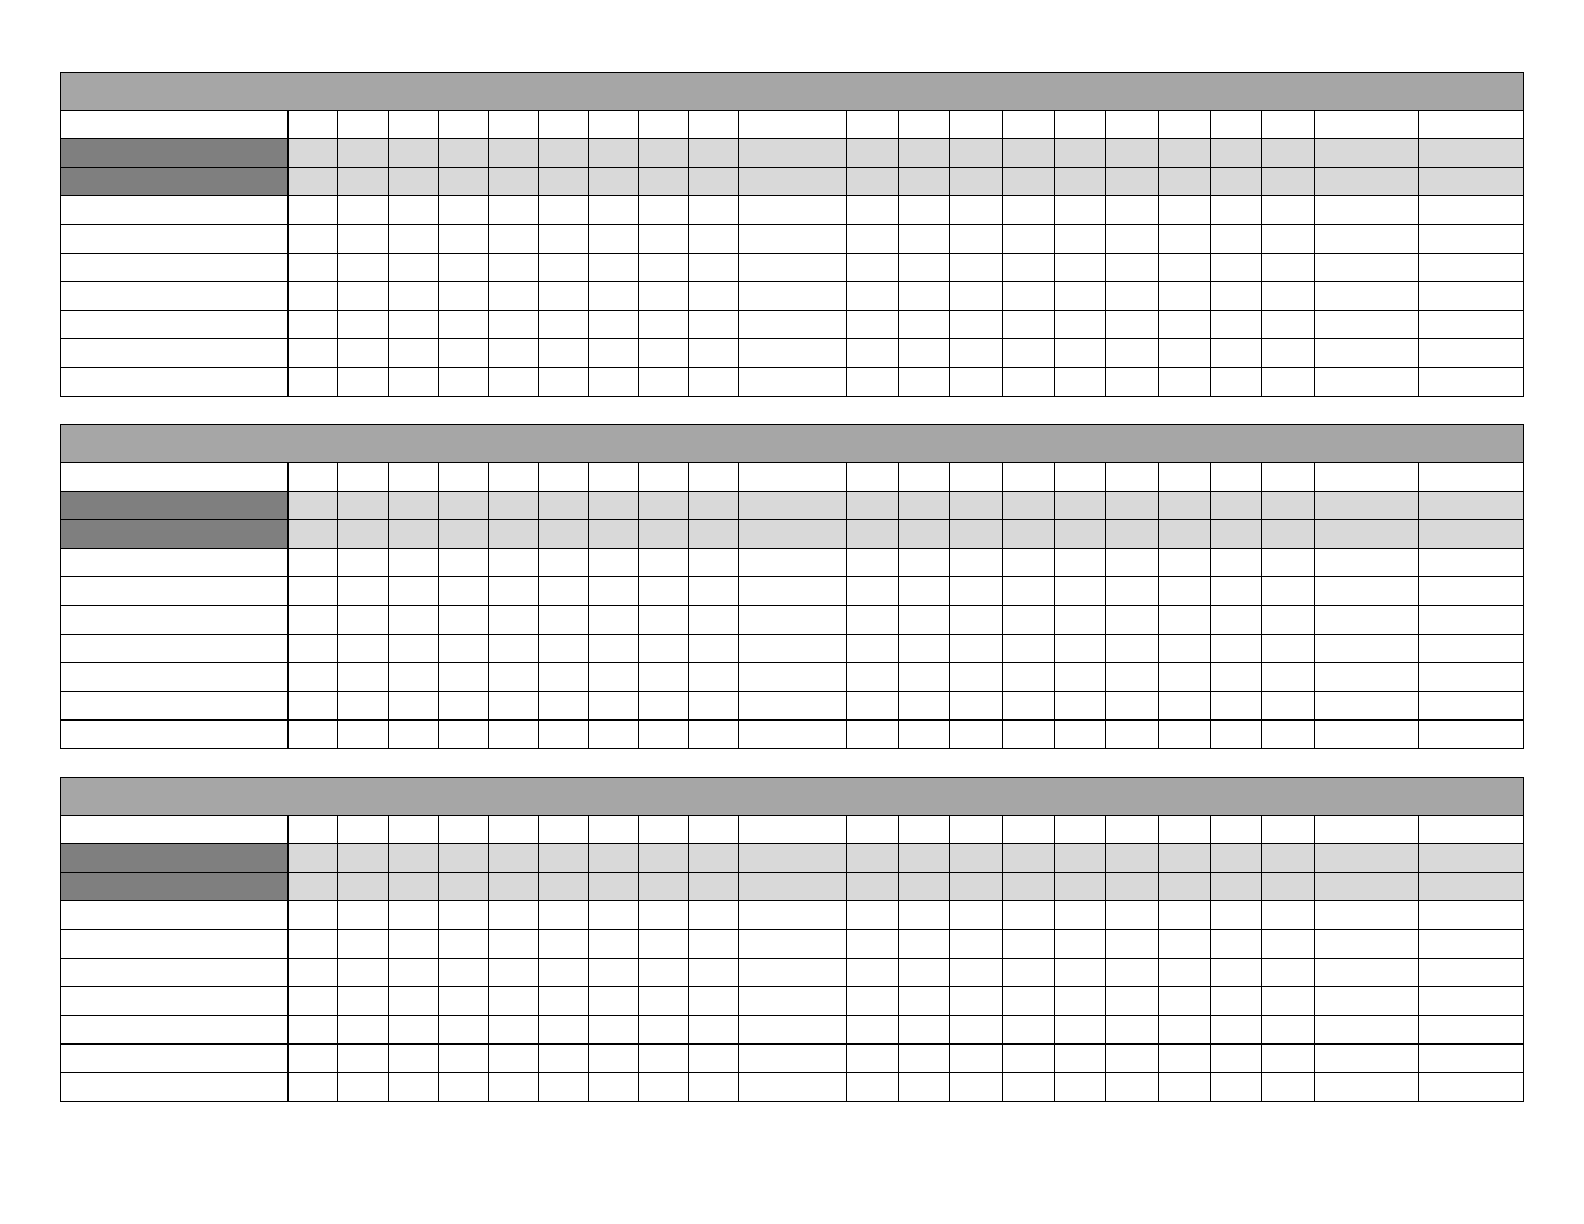 This is an image of Luscious Disc Golf Scorecard Printable